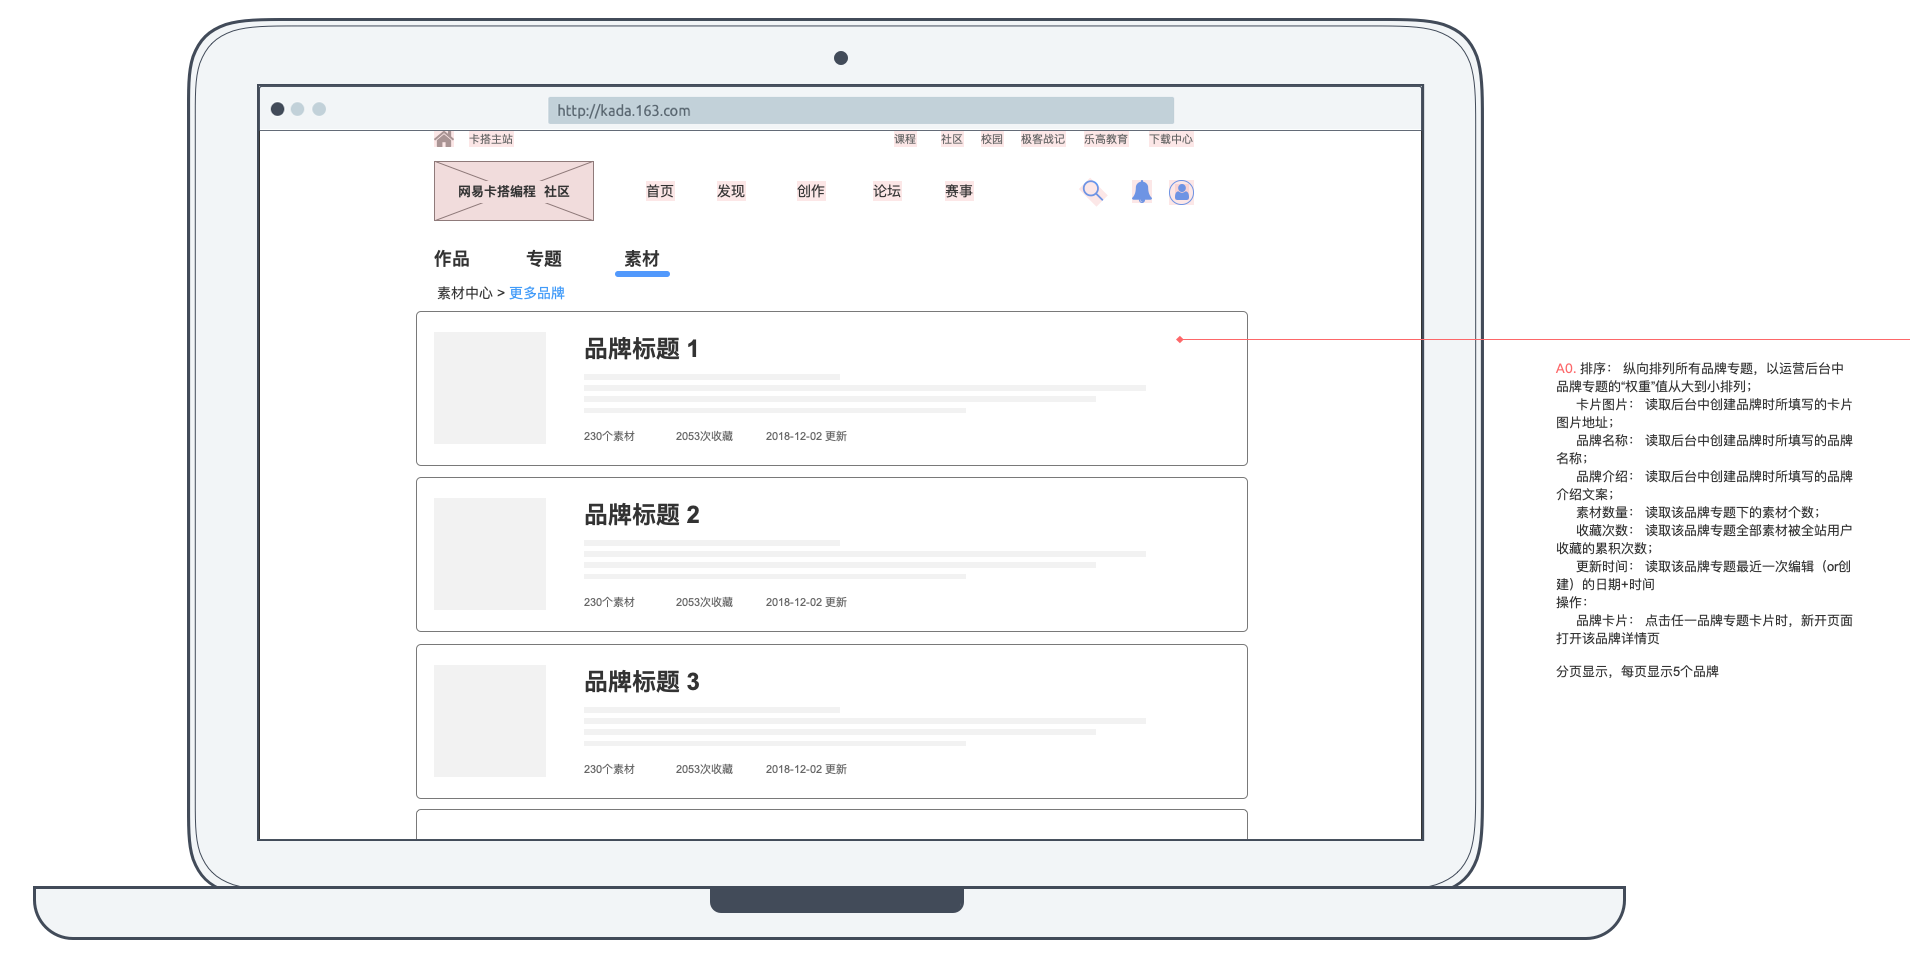 Figure 5: The wireframe for Brand Listing